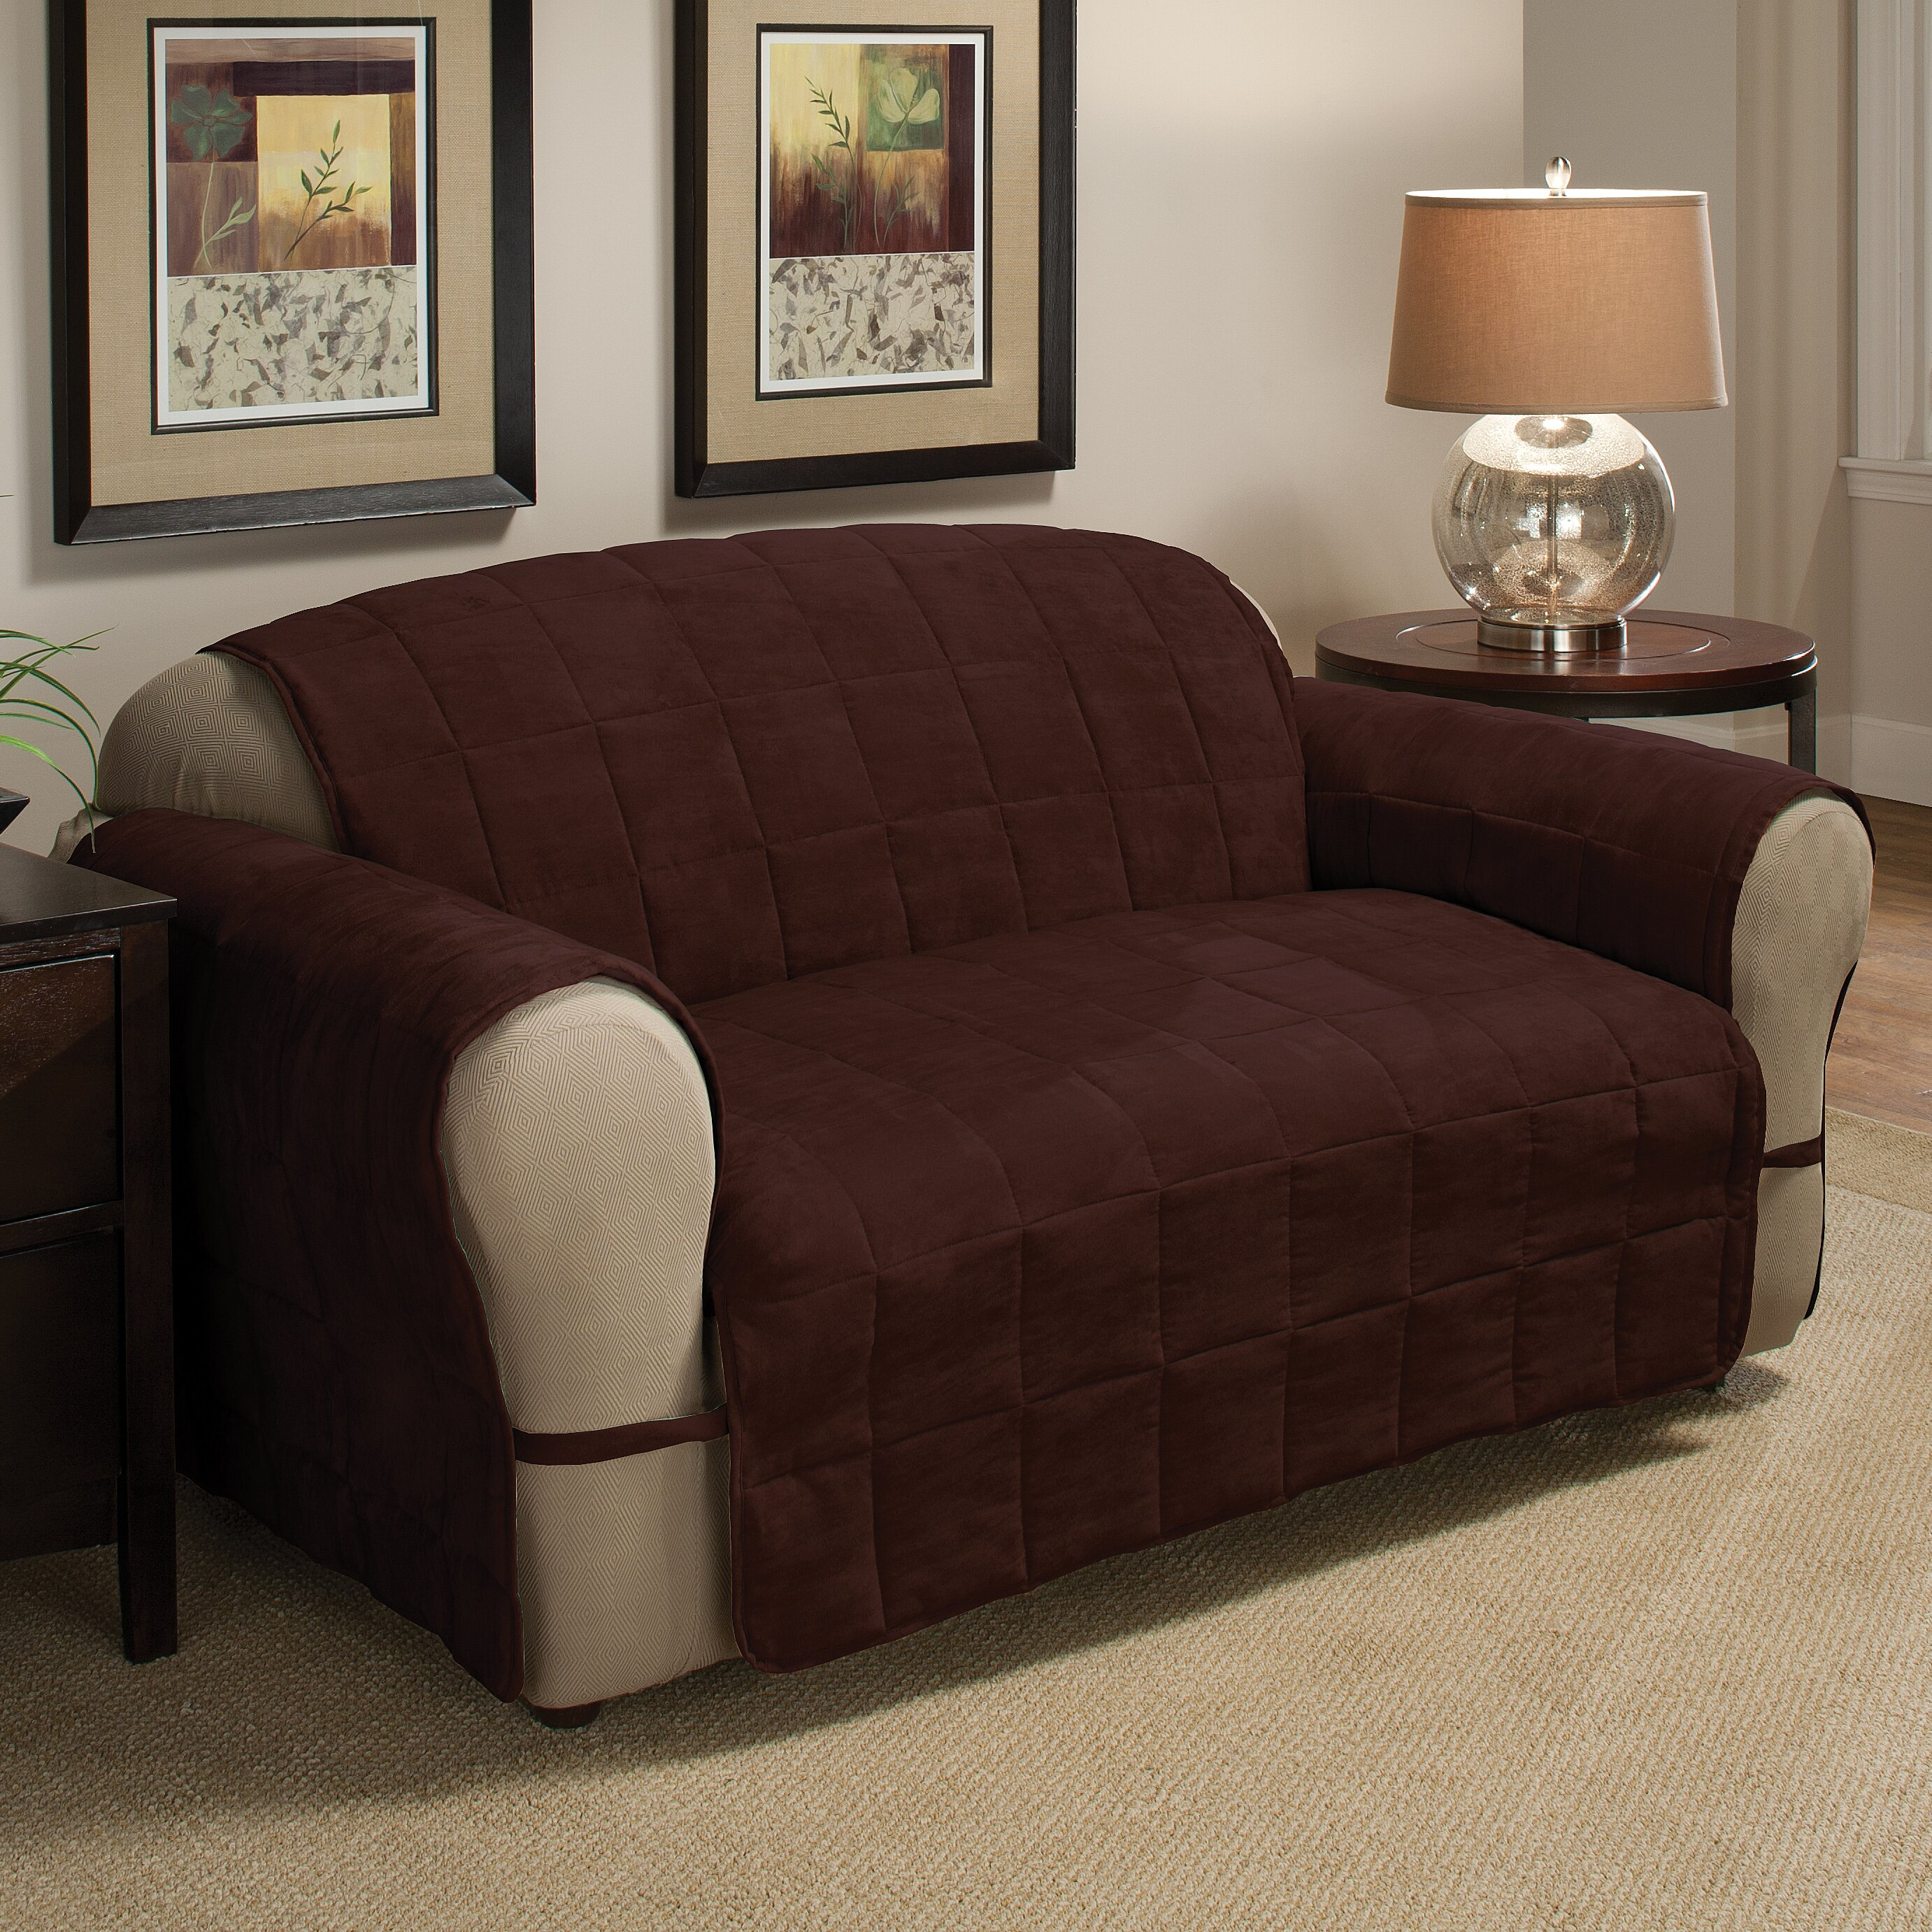 Sofa Slip Covers Lowes Replacement Sofa Slipcover Lowes